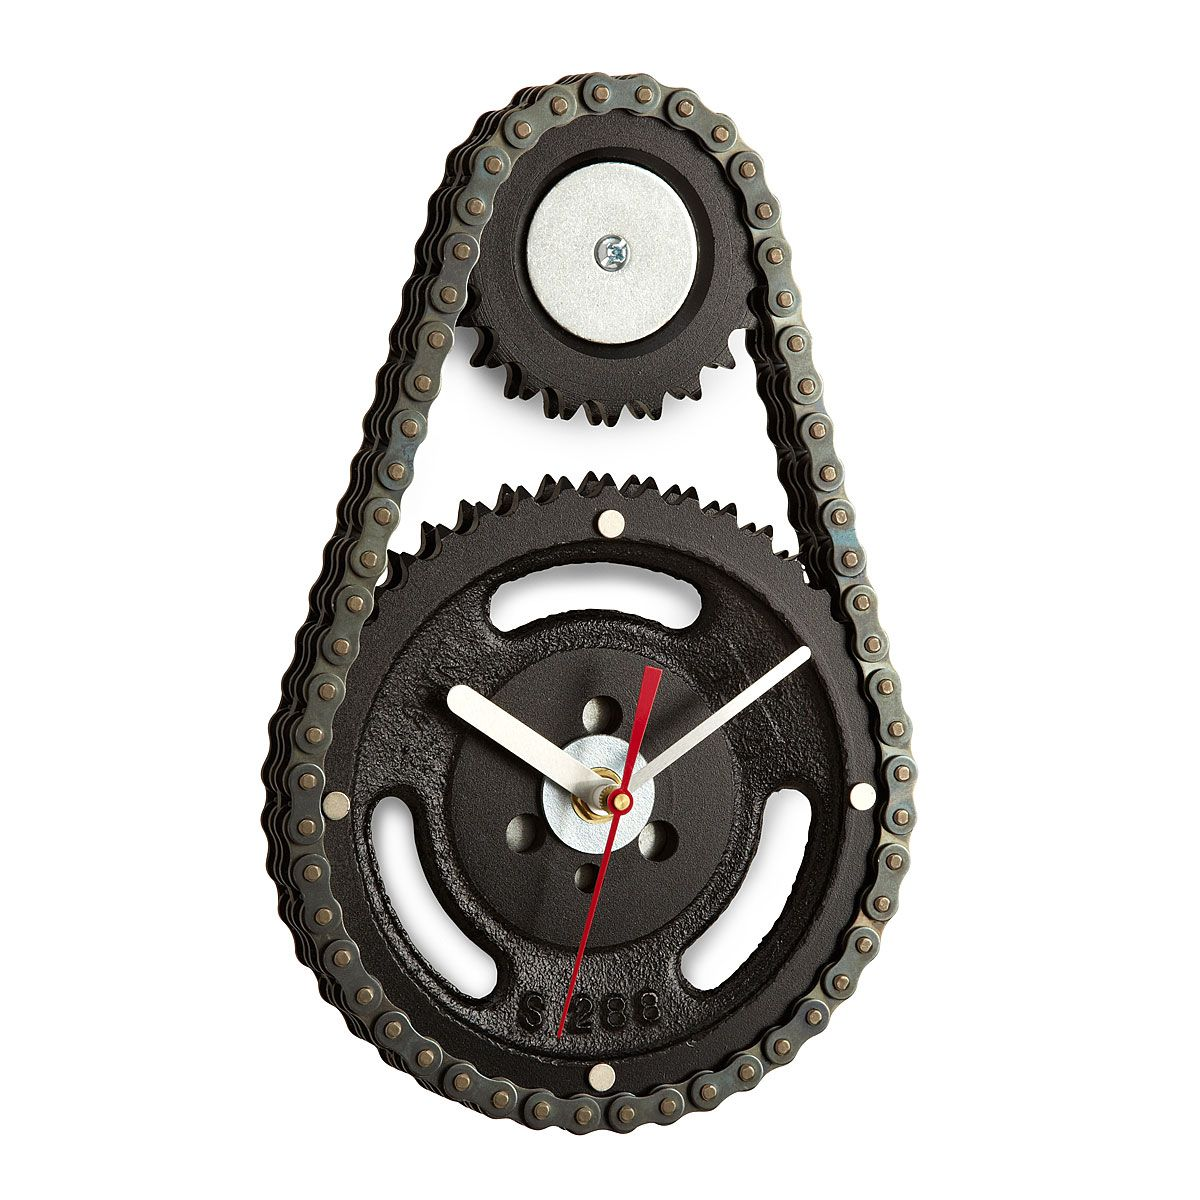 Auto Timing Chain and Gears Wall Clock Wall clocks Repurposed